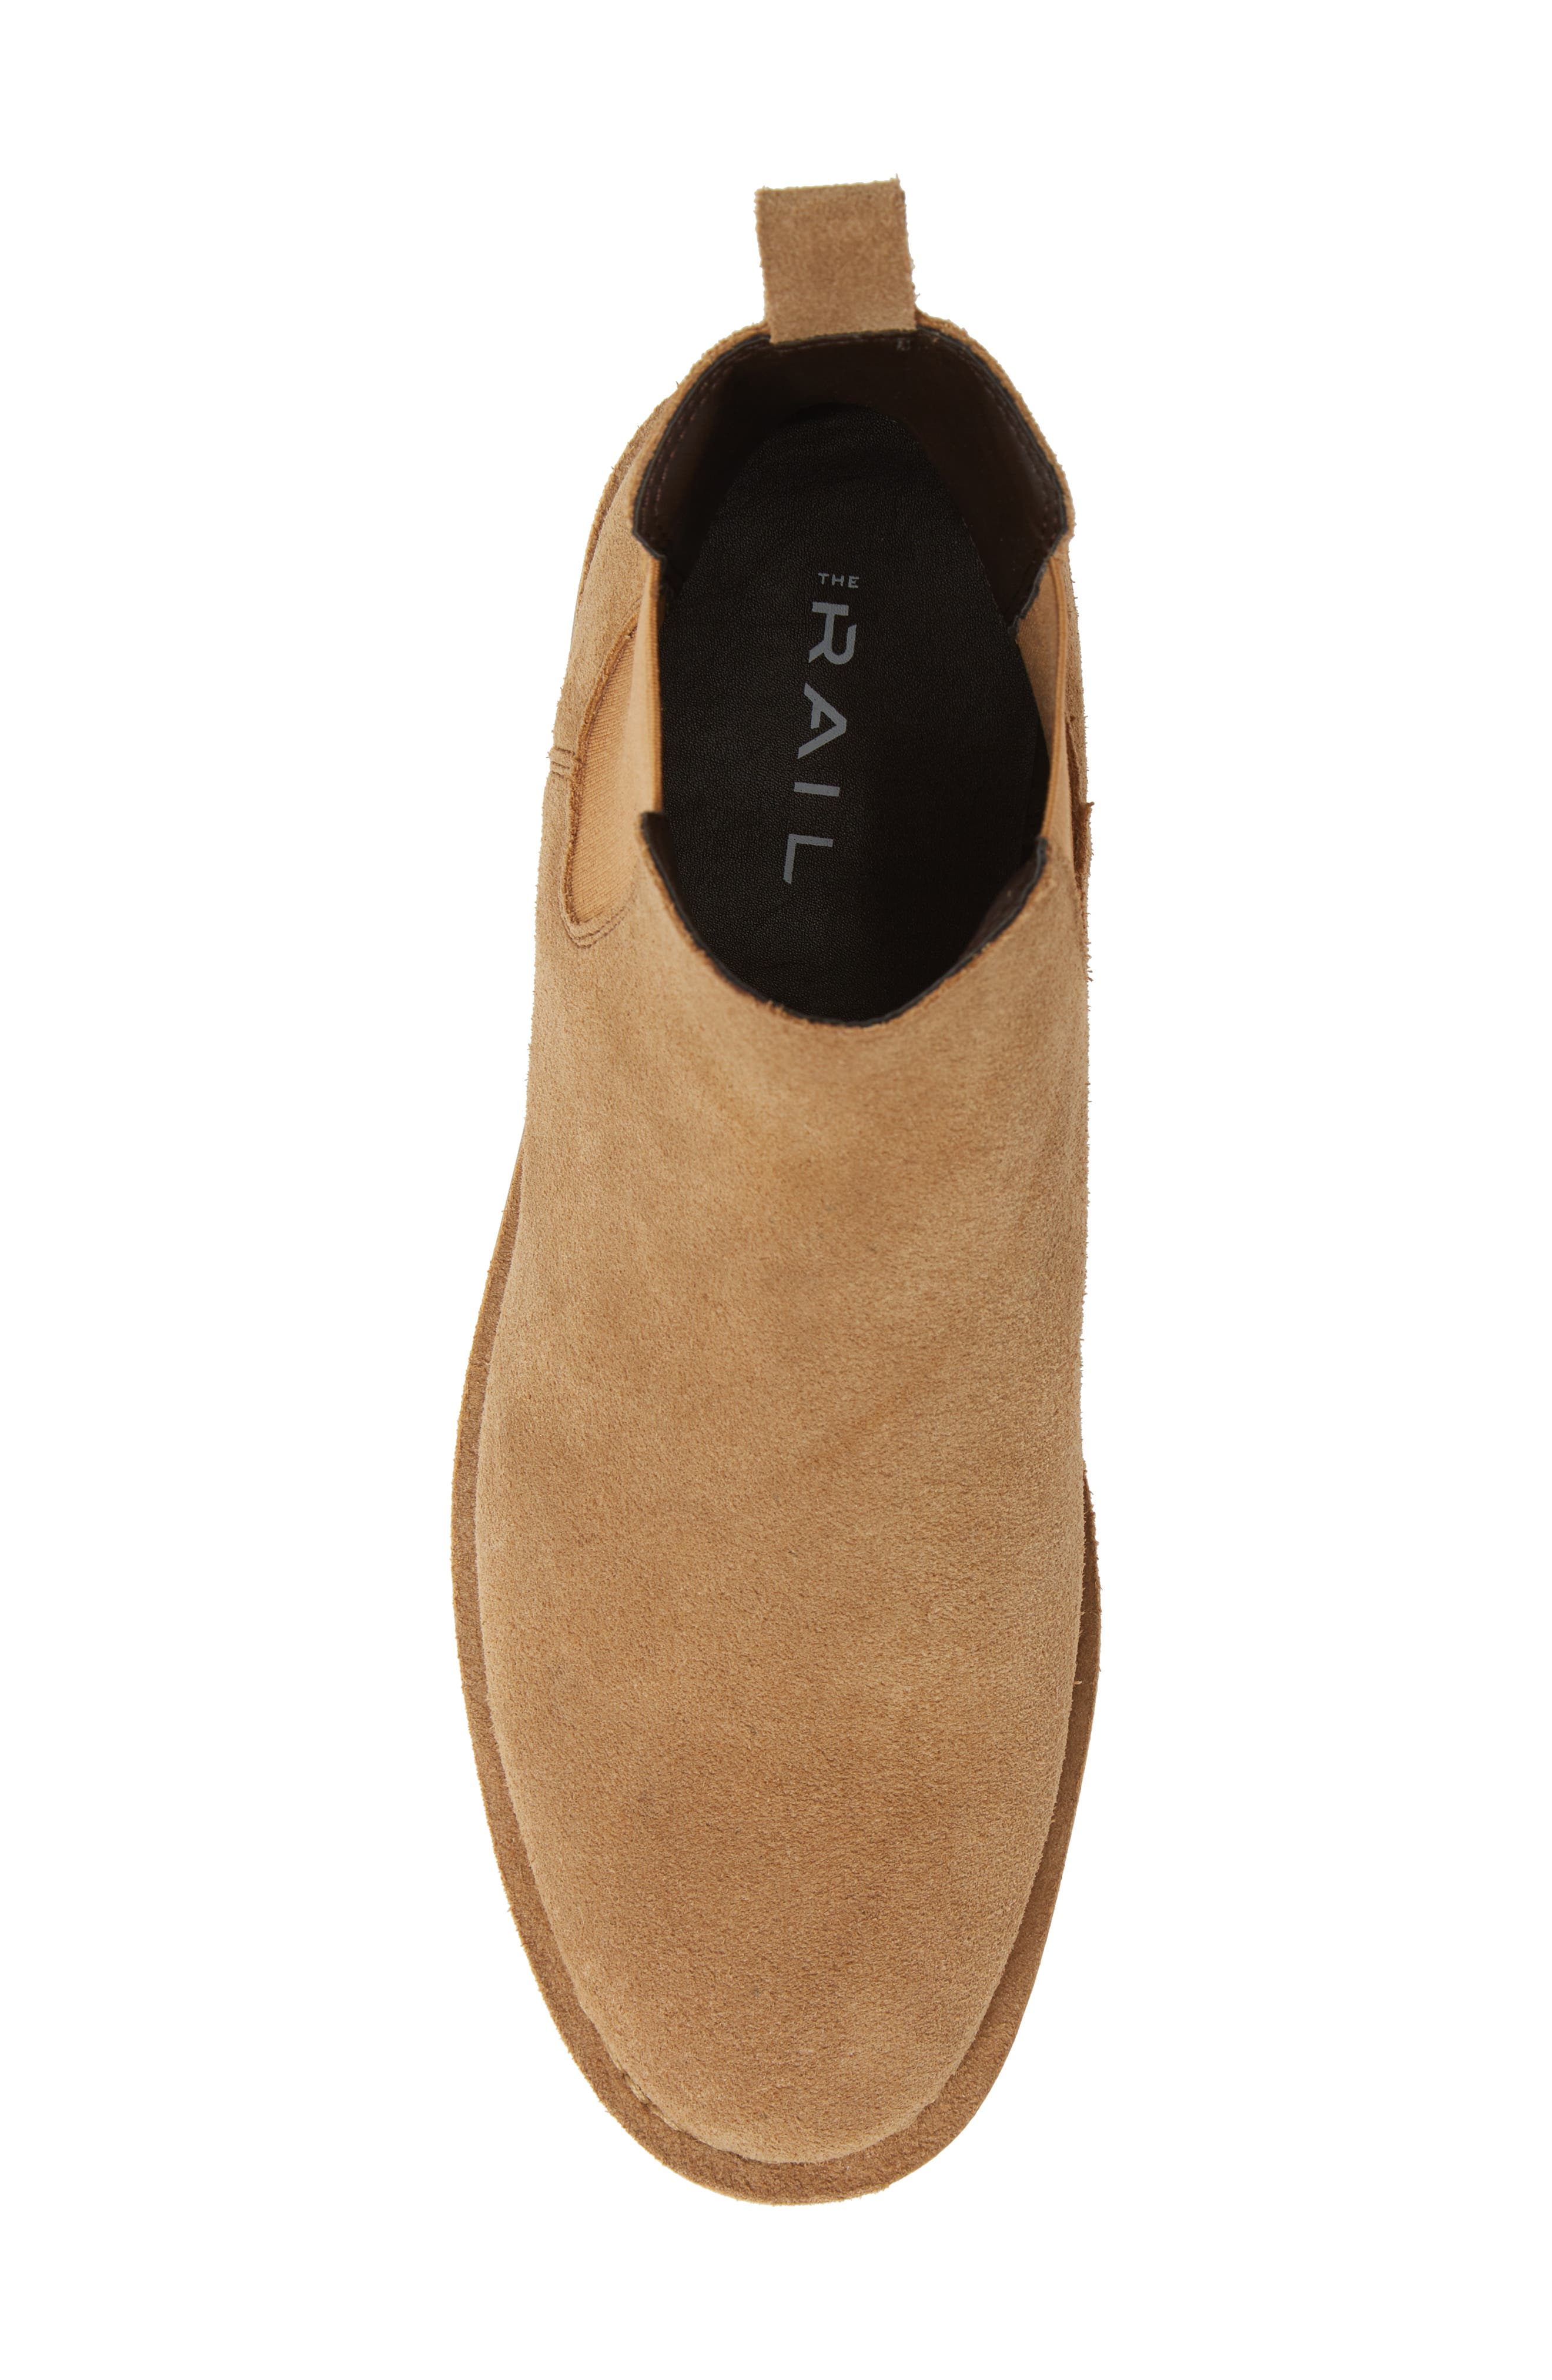 THE RAIL, Payson Chelsea Boot, Alternate thumbnail 5, color, SAND SUEDE